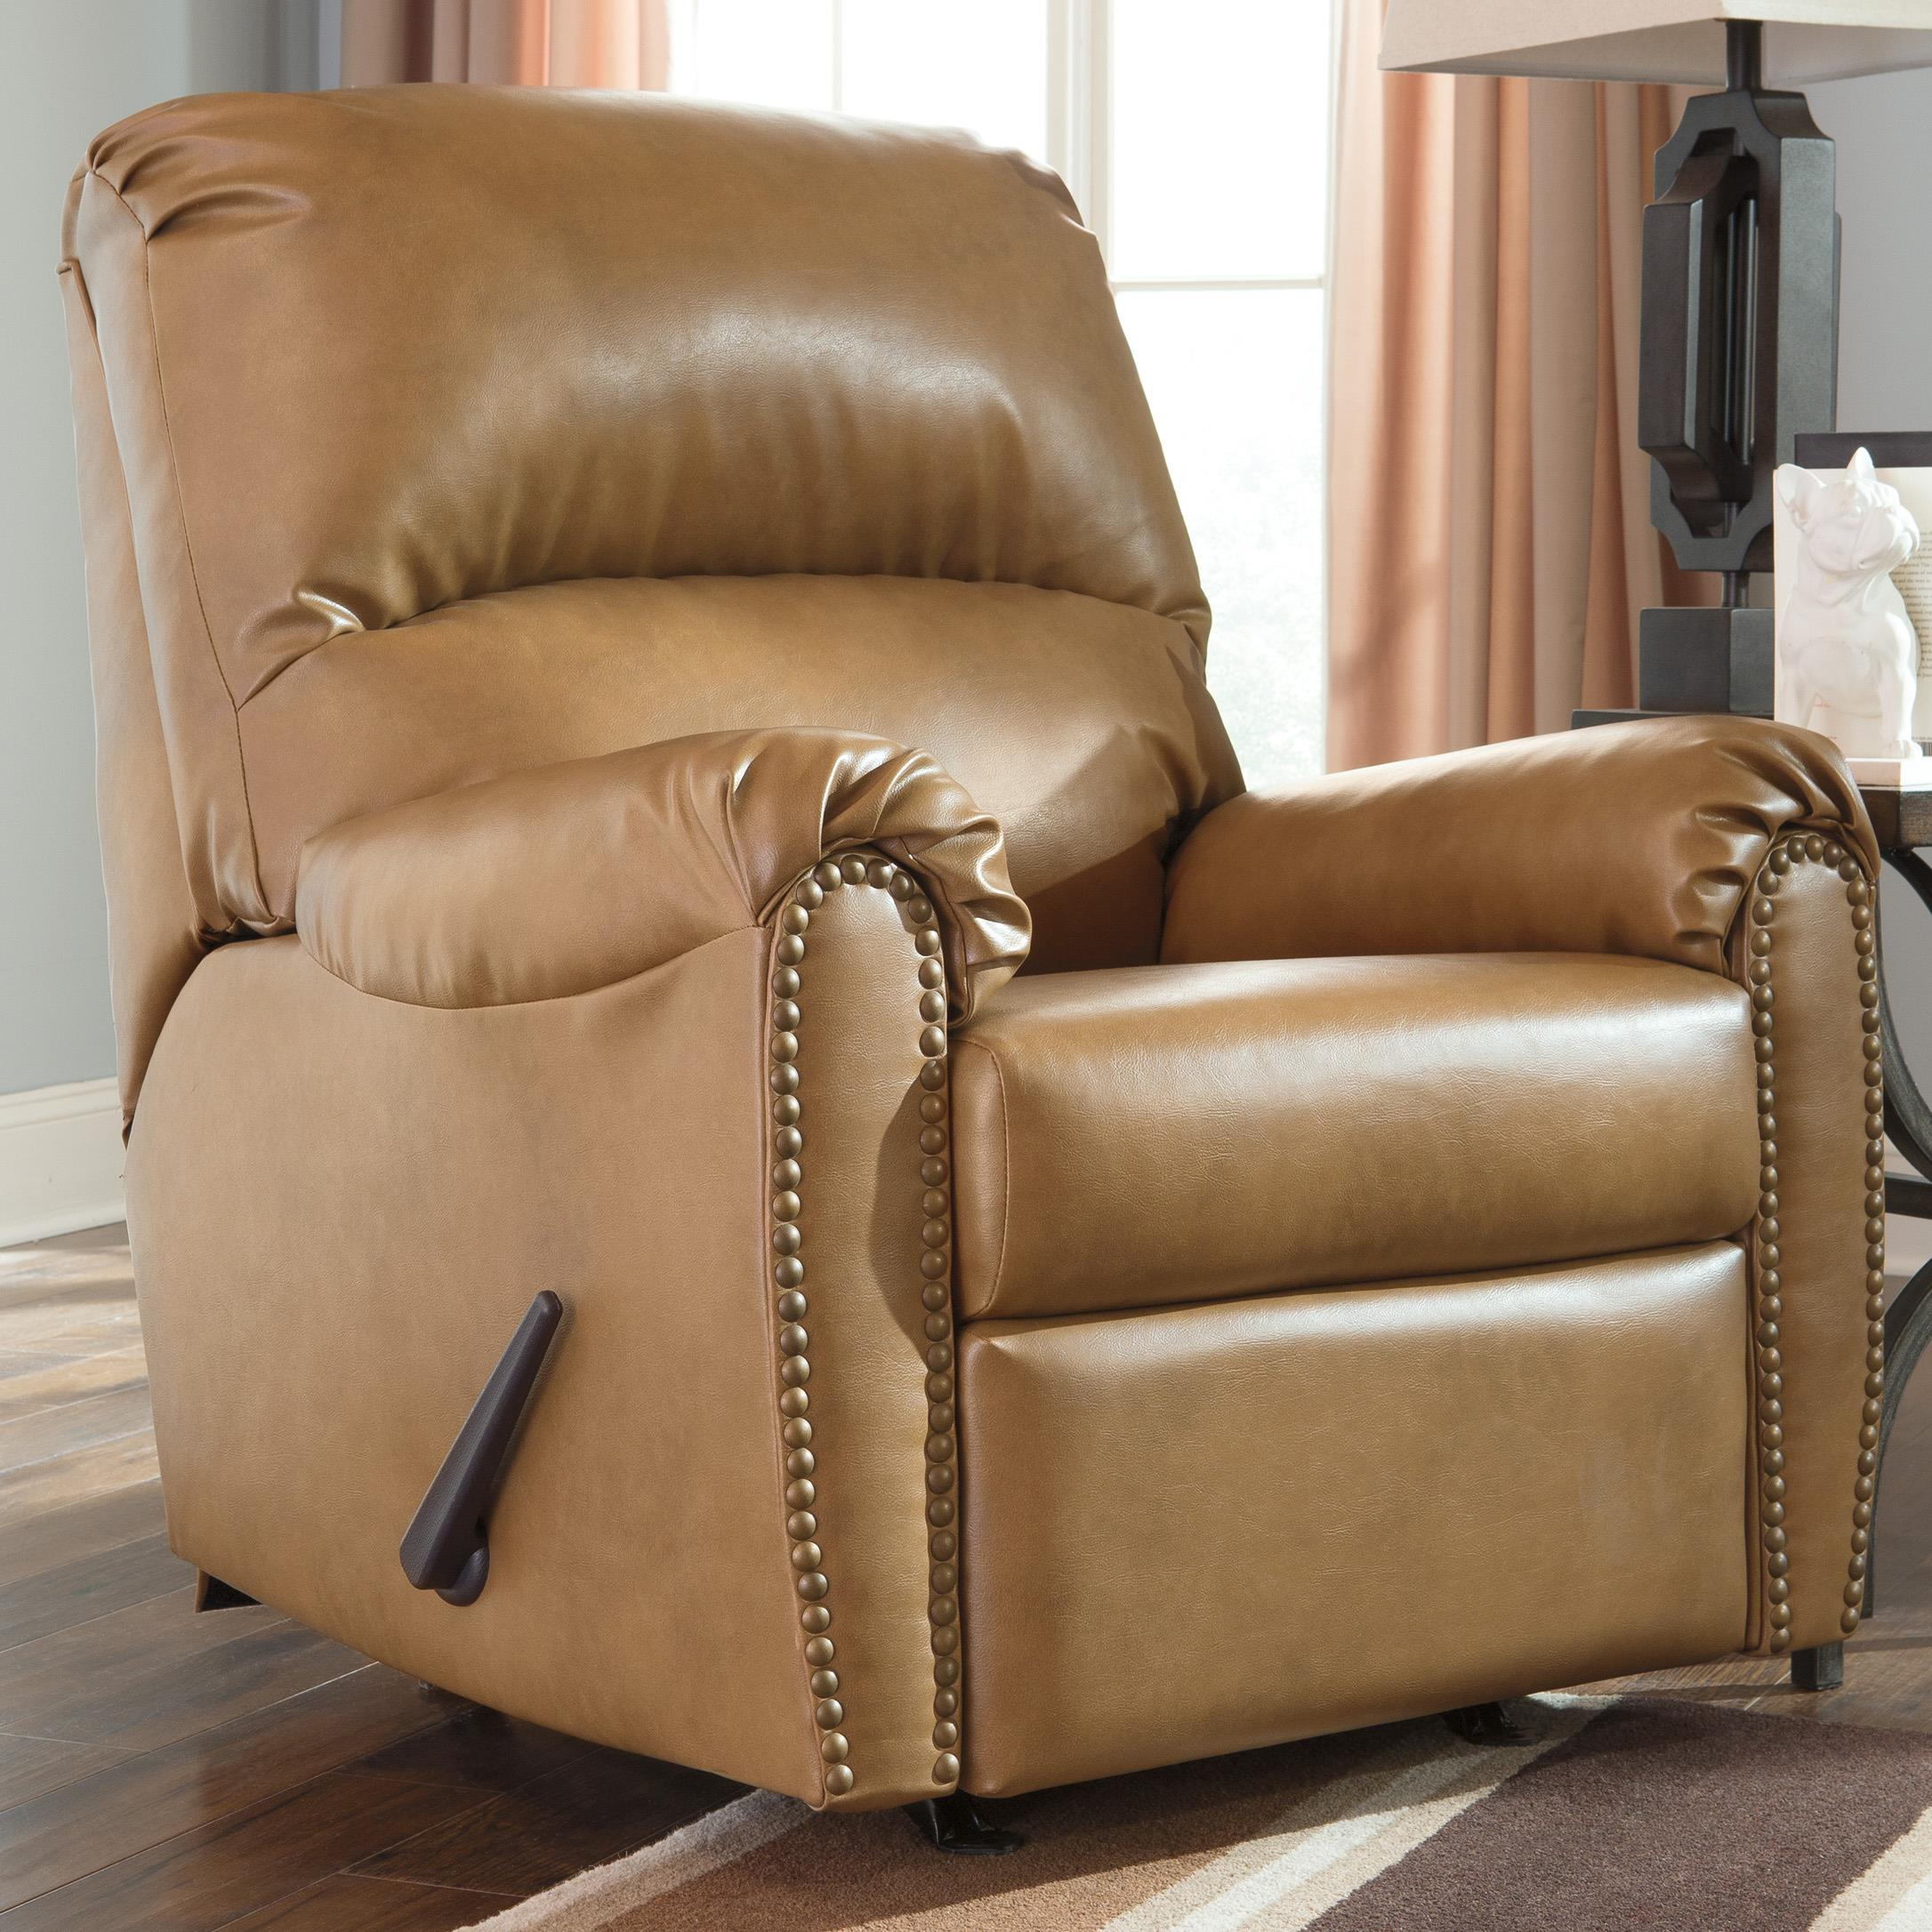 Signature Design by Ashley Lottie DuraBlend® Rocker Recliner - Item Number: 3800225